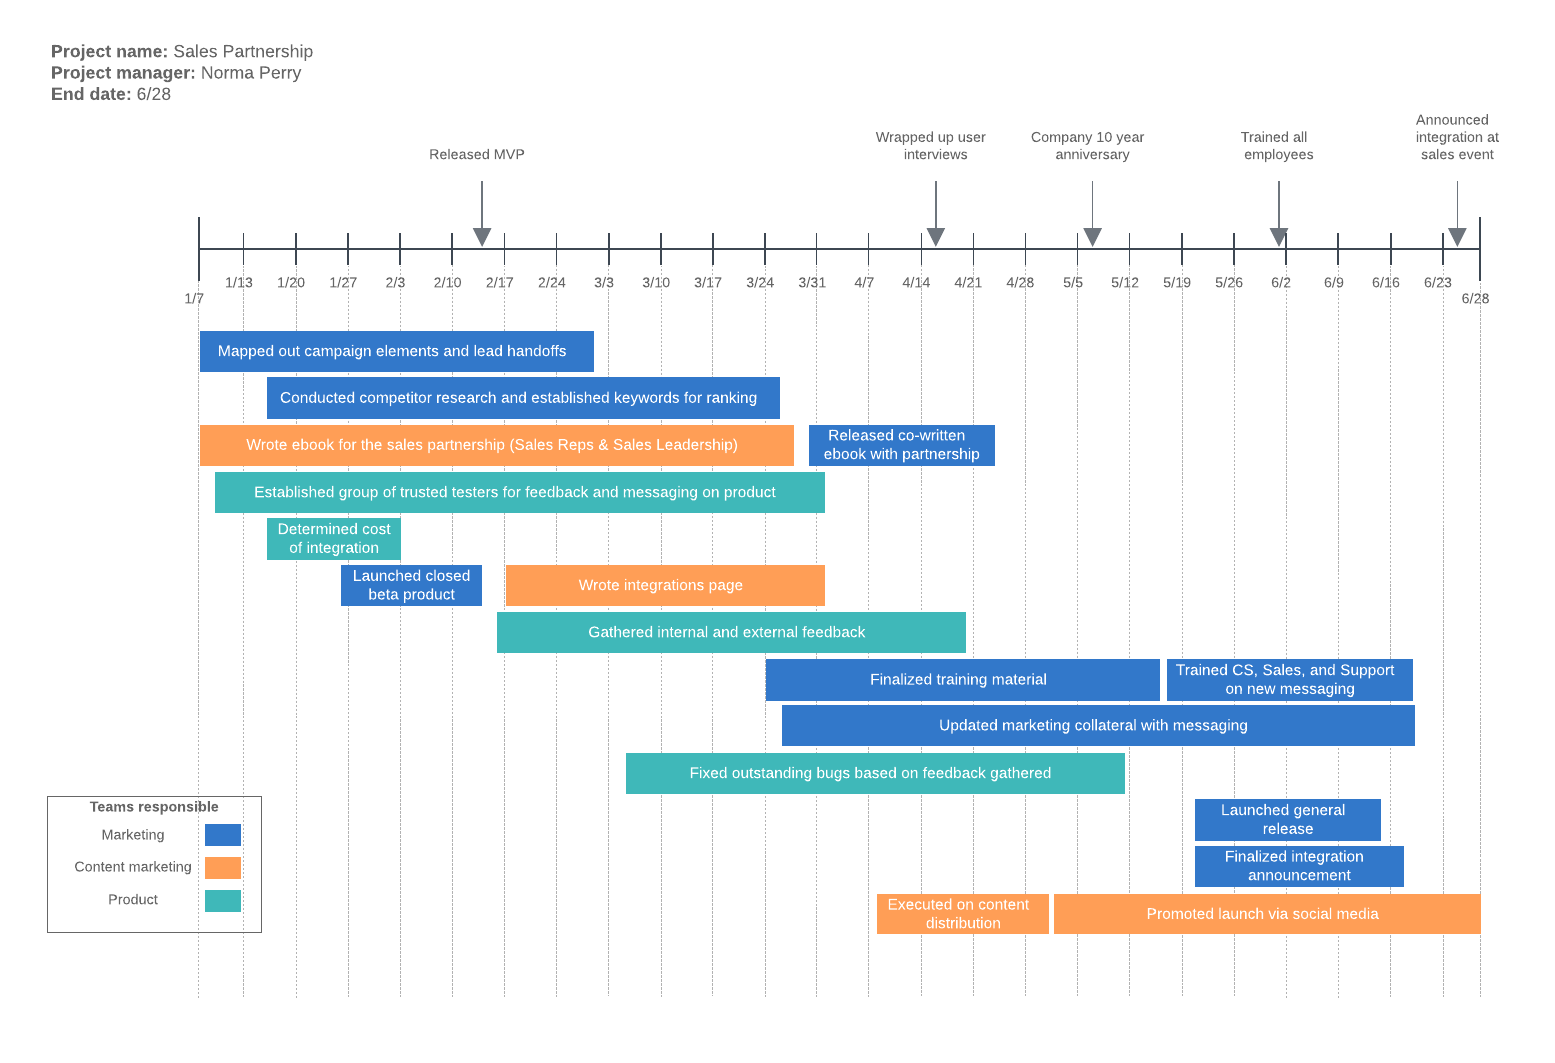 How To Make A Timeline In Excel